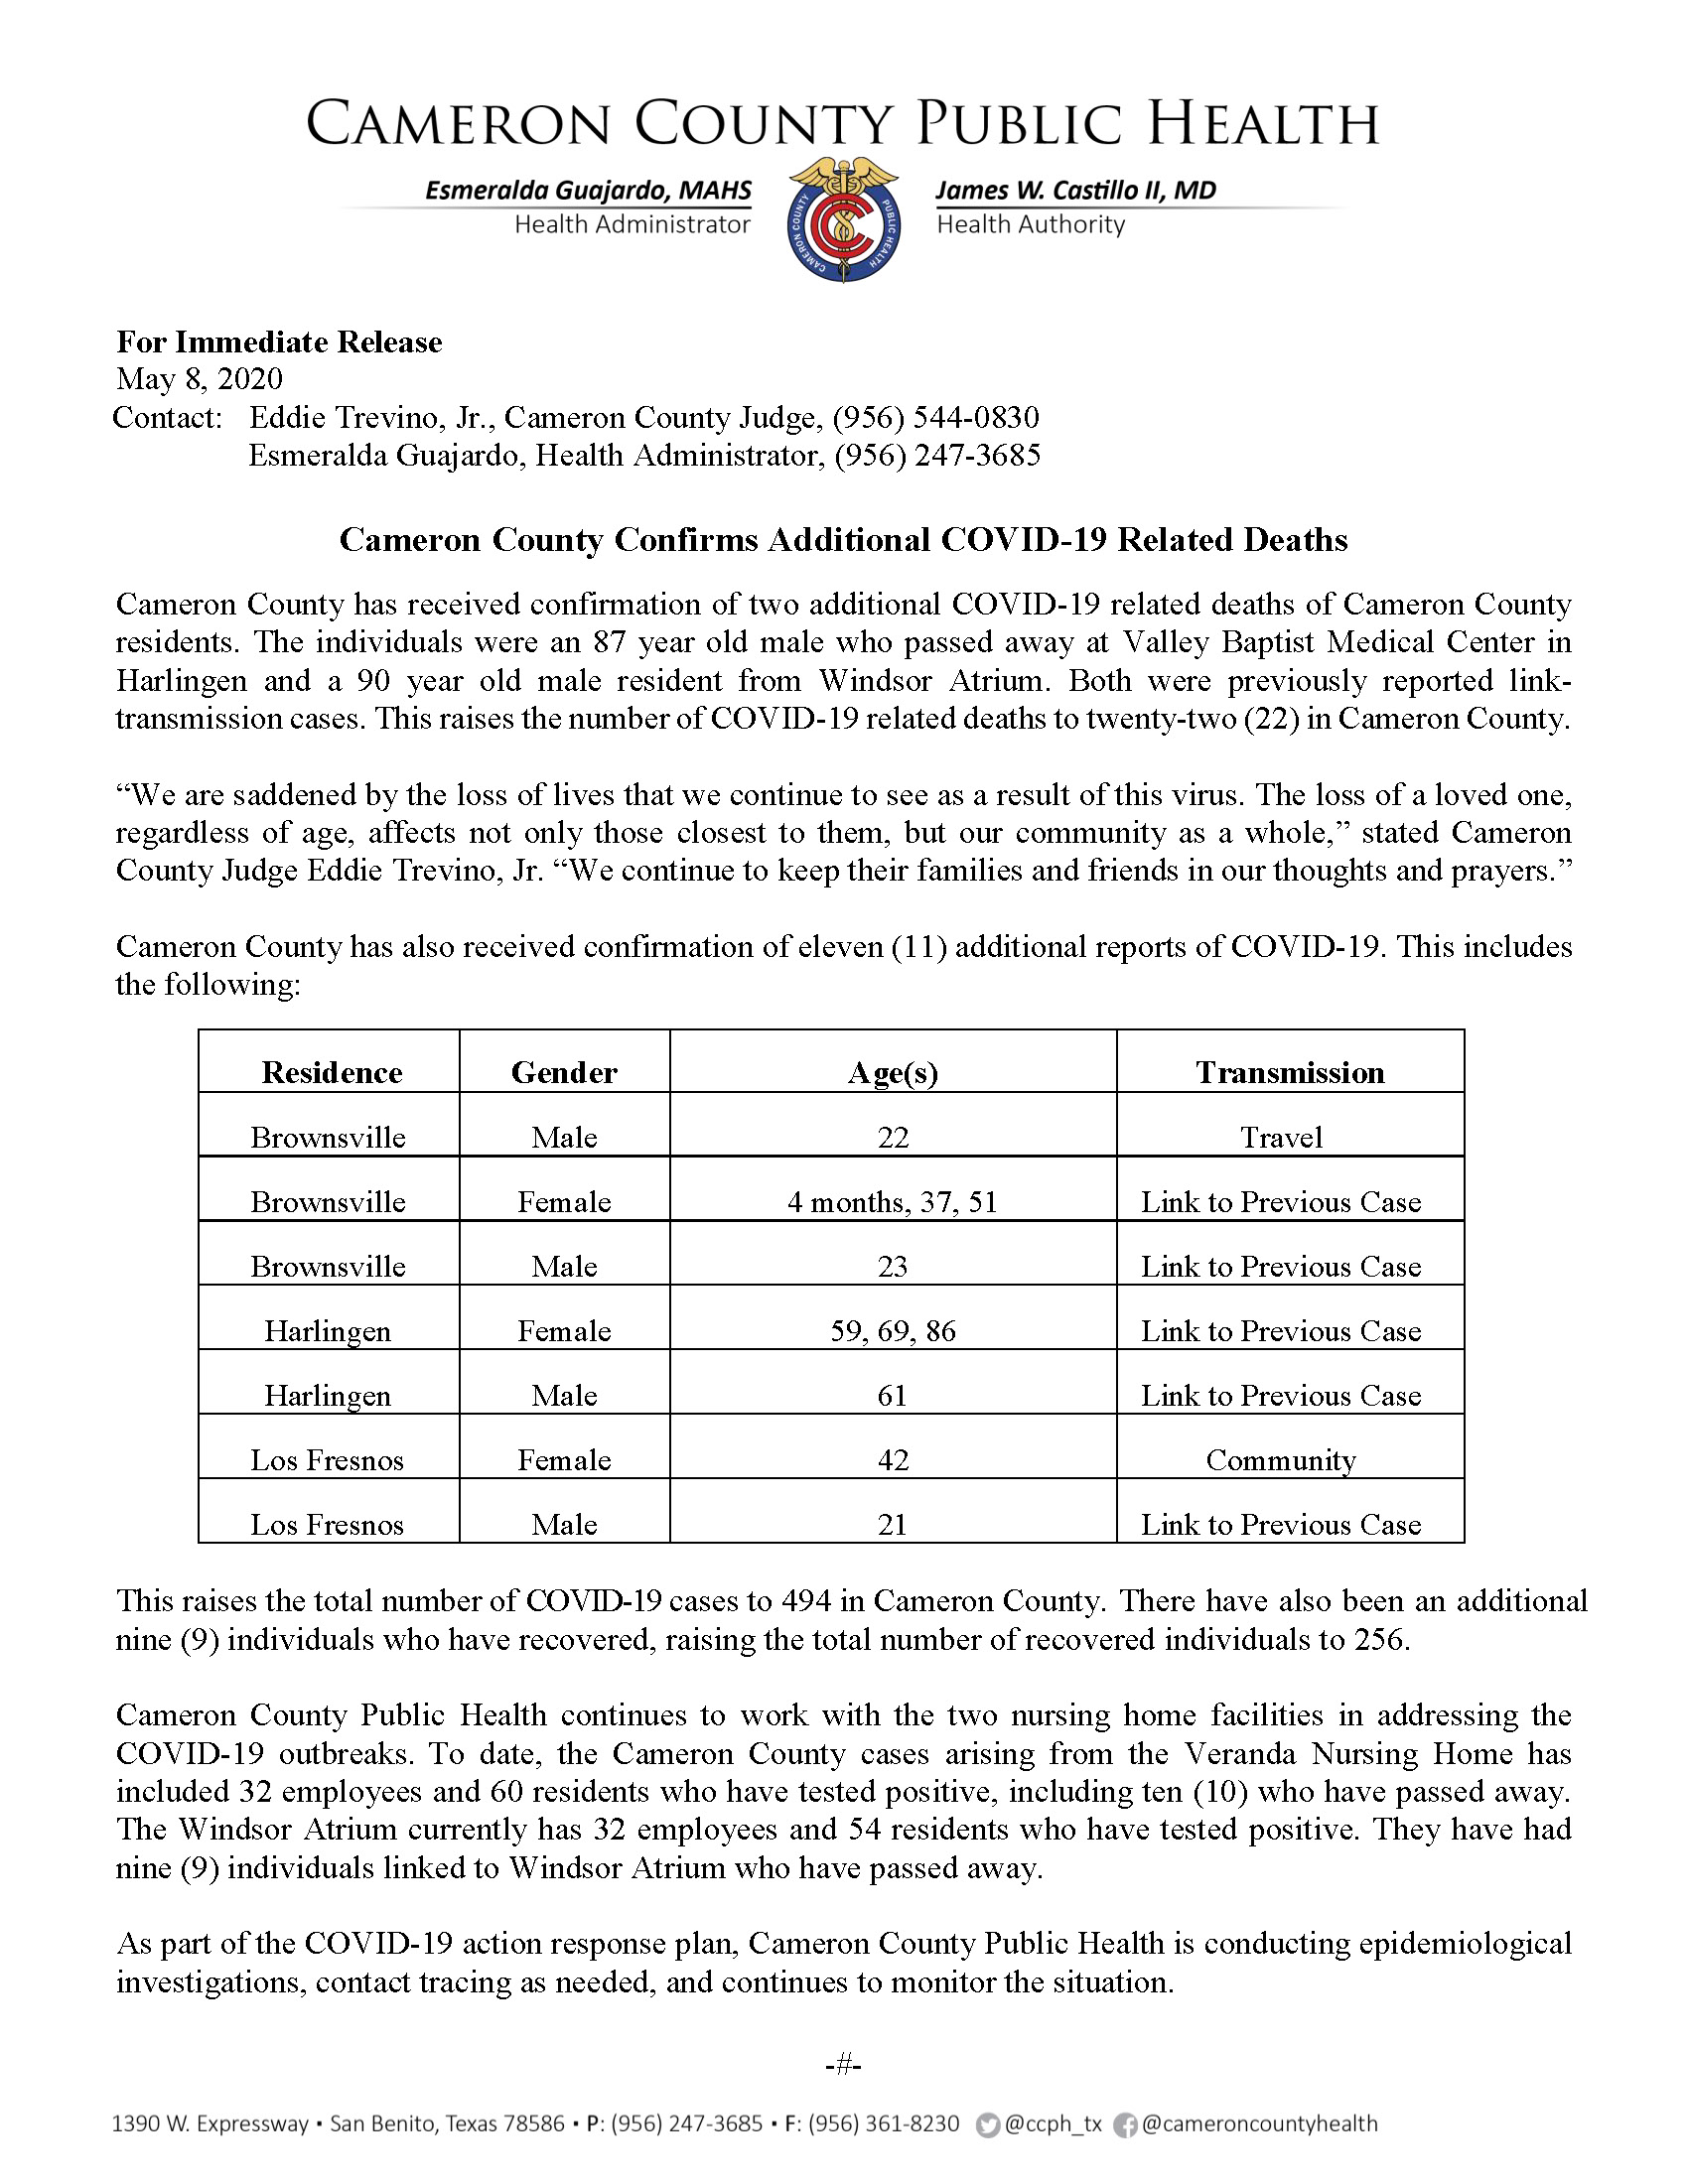 Two Travel Related Cases Of Covid 19 Reported In Harris: Cameron County Confirms Additional COVID-19 Related Deaths